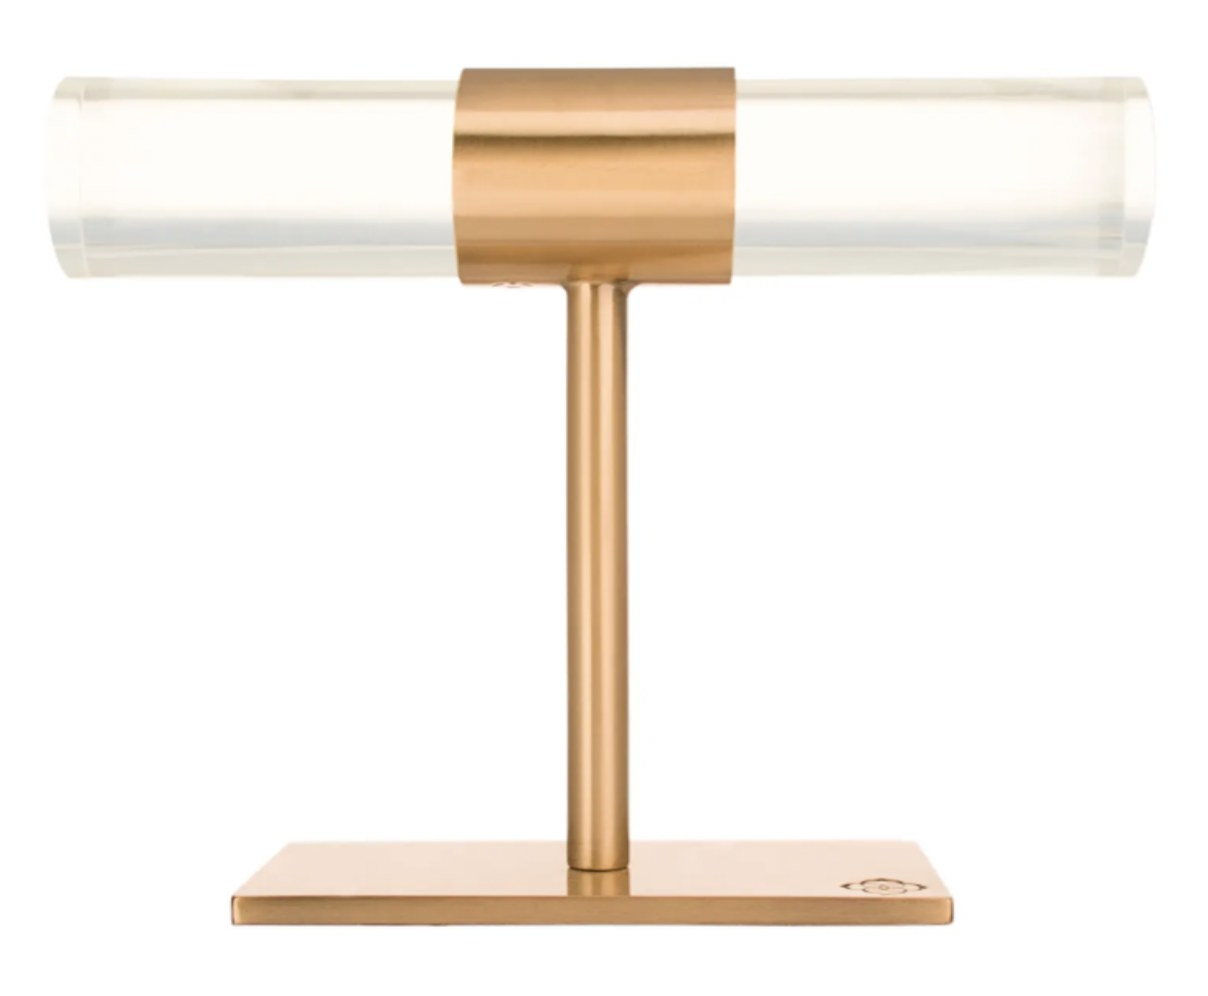 A T-bar jewelry stand with a rose gold base and acrylic bars